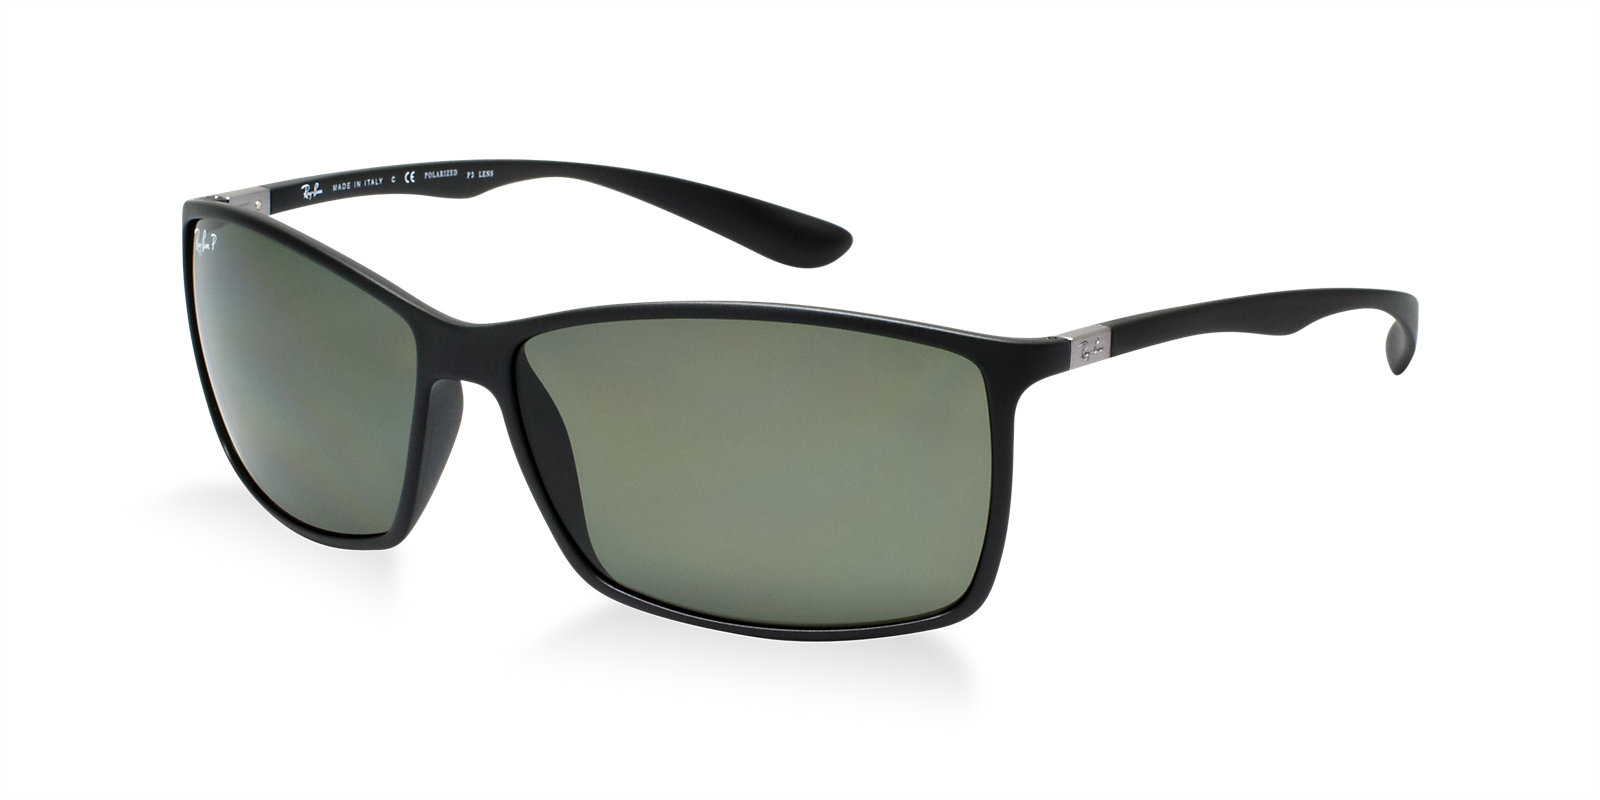 374919981d1 Previous  Next. Previous  Next. RAY-BAN RB4179 601S9A POLARIZED BLACK  LITEFORCE SUNGLASSES